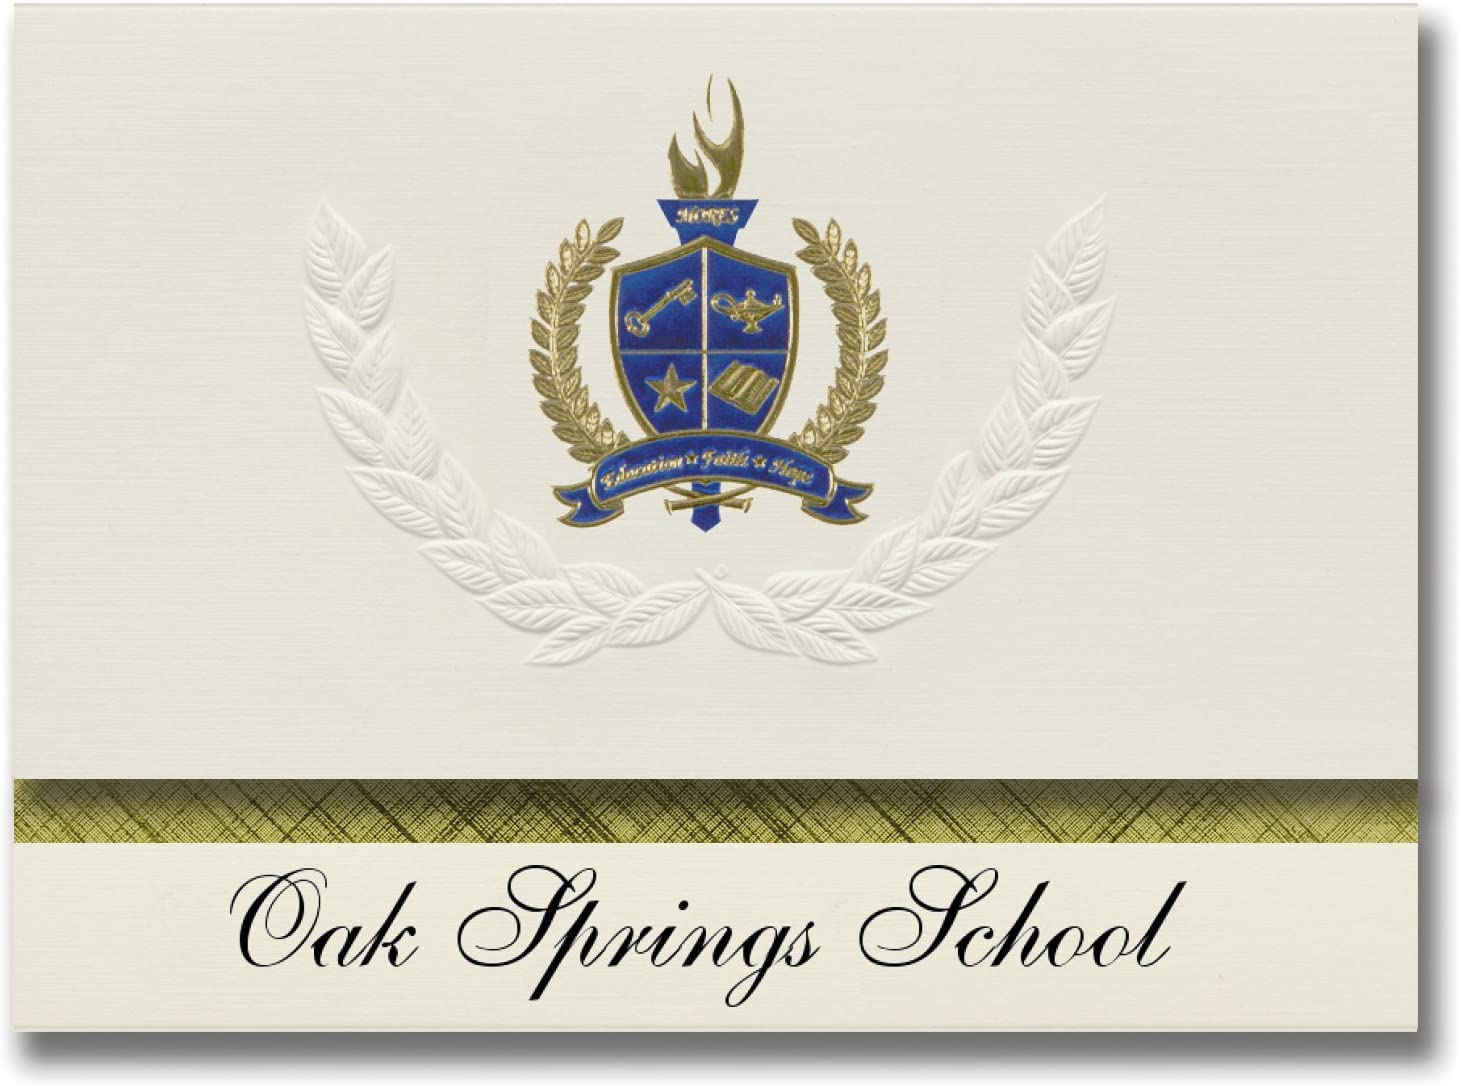 Signature Announcements Oak Springs School (Provo, UT) Graduation Announcements, Presidential style, Basic package of 25 with Gold & Blue Metallic Foil seal